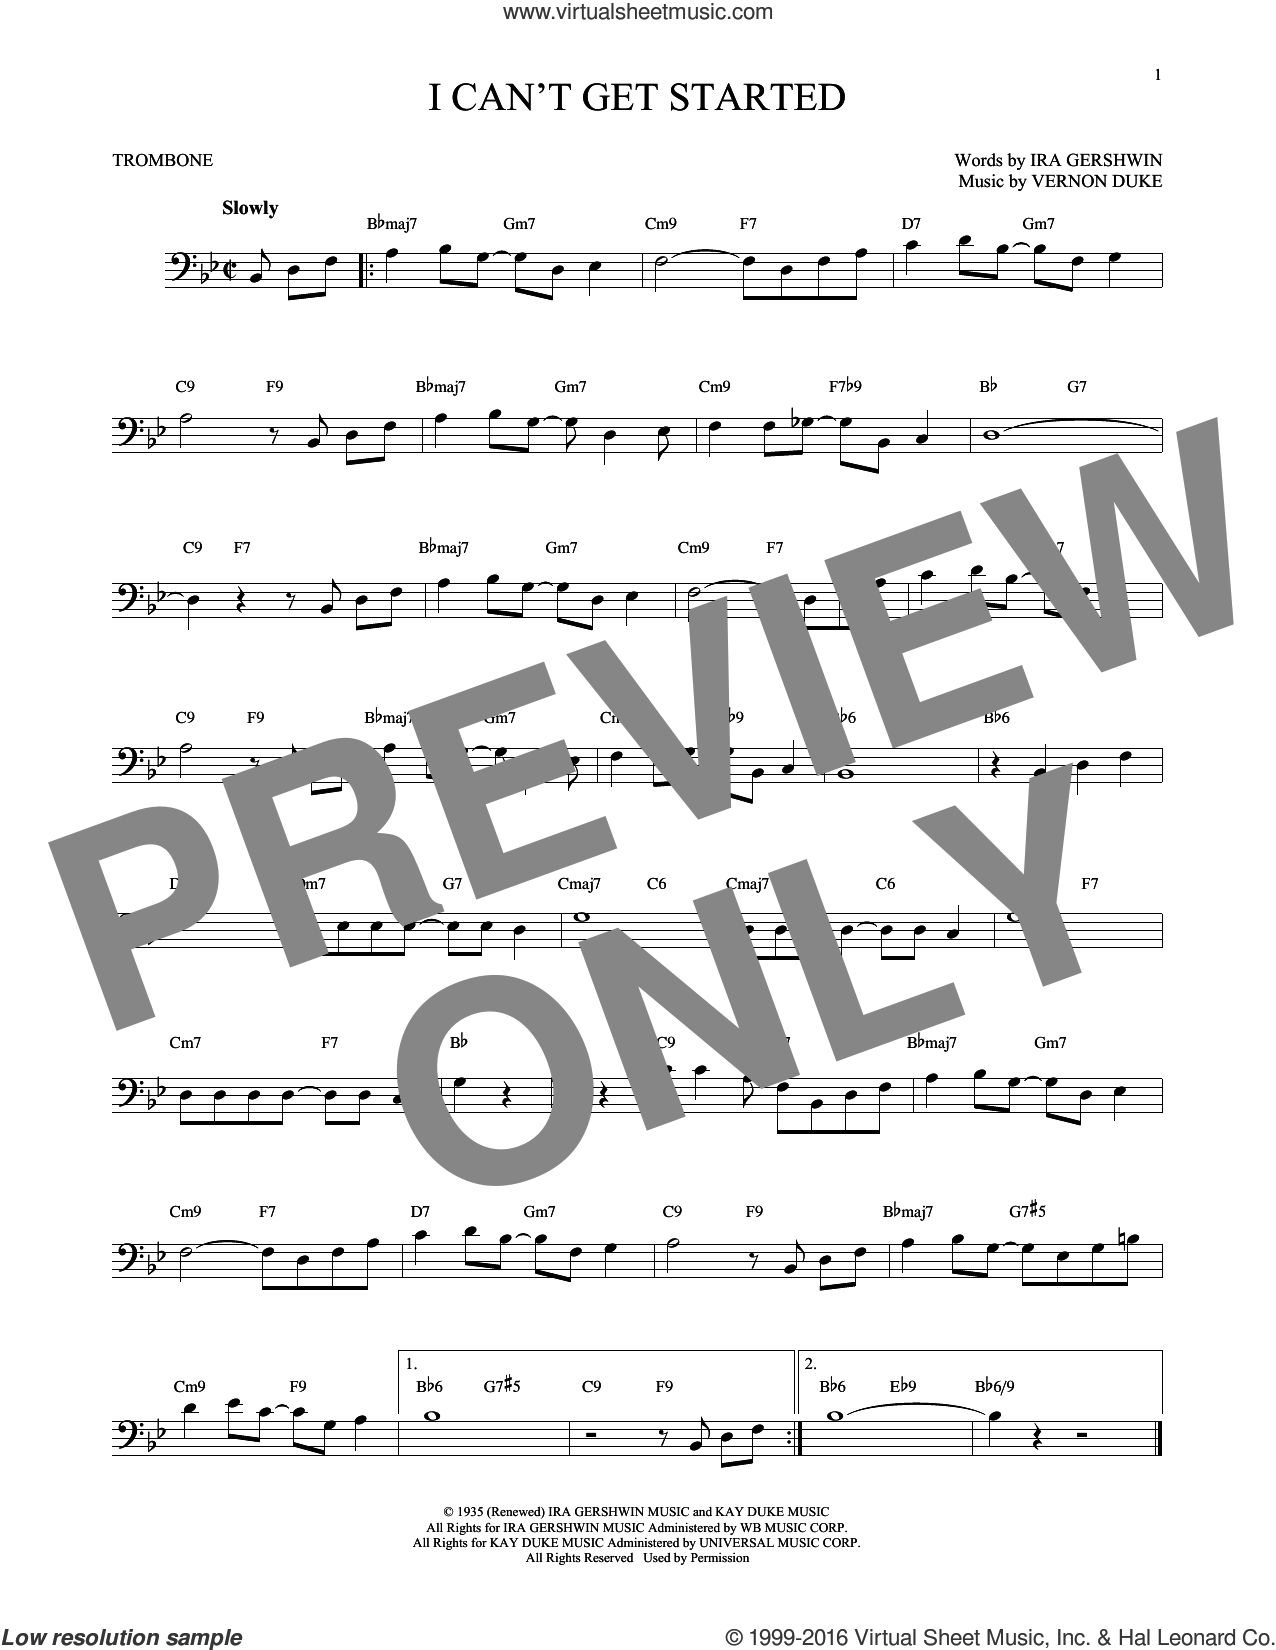 I Can't Get Started sheet music for trombone solo by Ira Gershwin and Vernon Duke, intermediate skill level